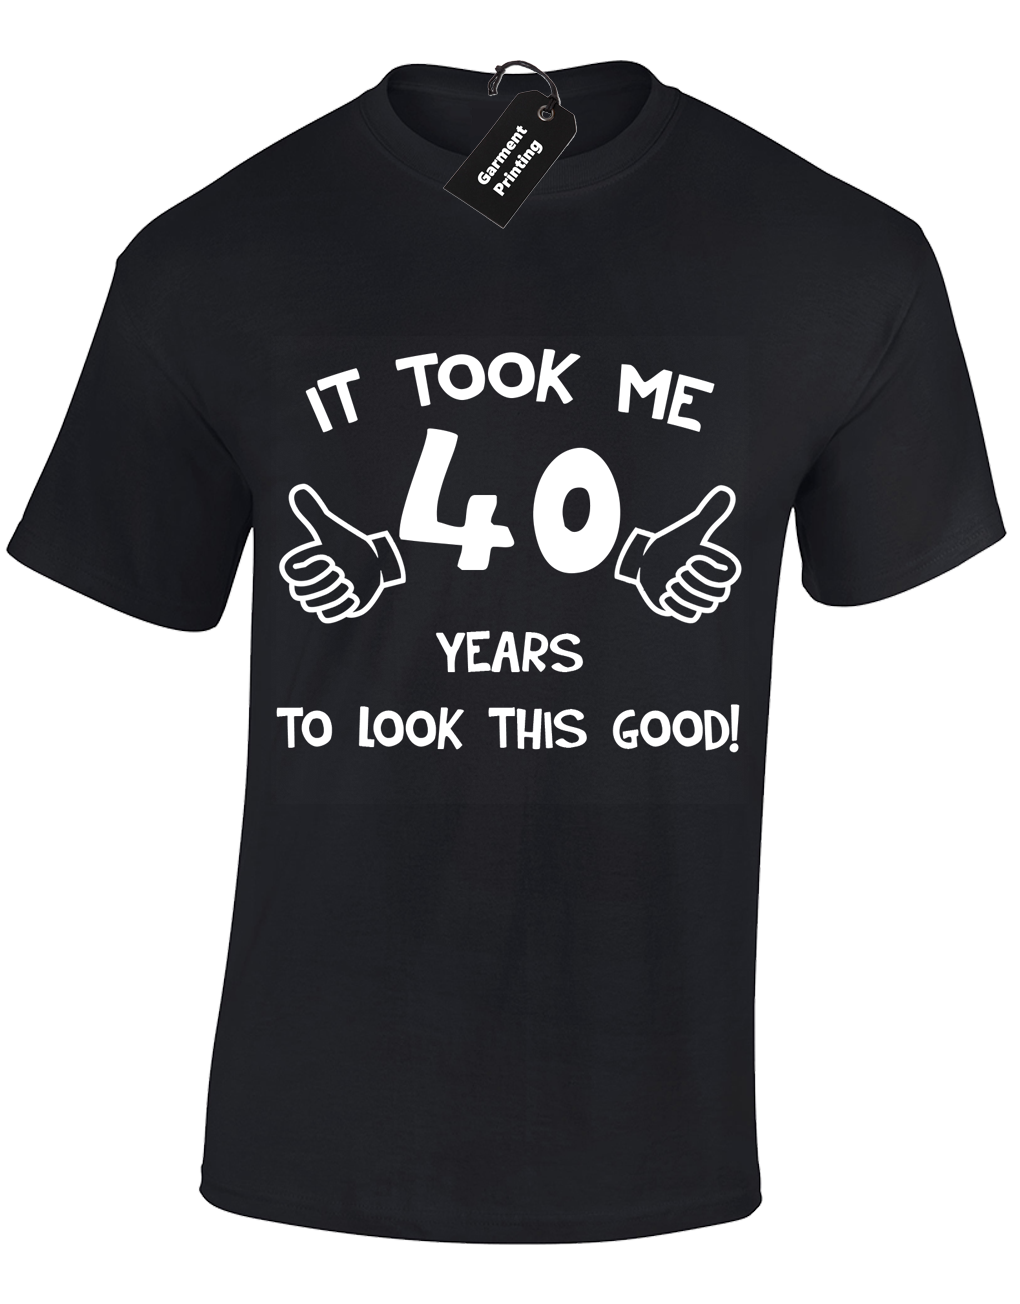 It Took Me 40 Years <font><b>Mens</b></font> T Shirt Popular Summer <font><b>Idea</b></font> Top Present <font><b>40th</b></font> <font><b>Birthday</b></font> S-5xl Cool Cool Pride T Shirt <font><b>Men</b></font> New Tops Tee image